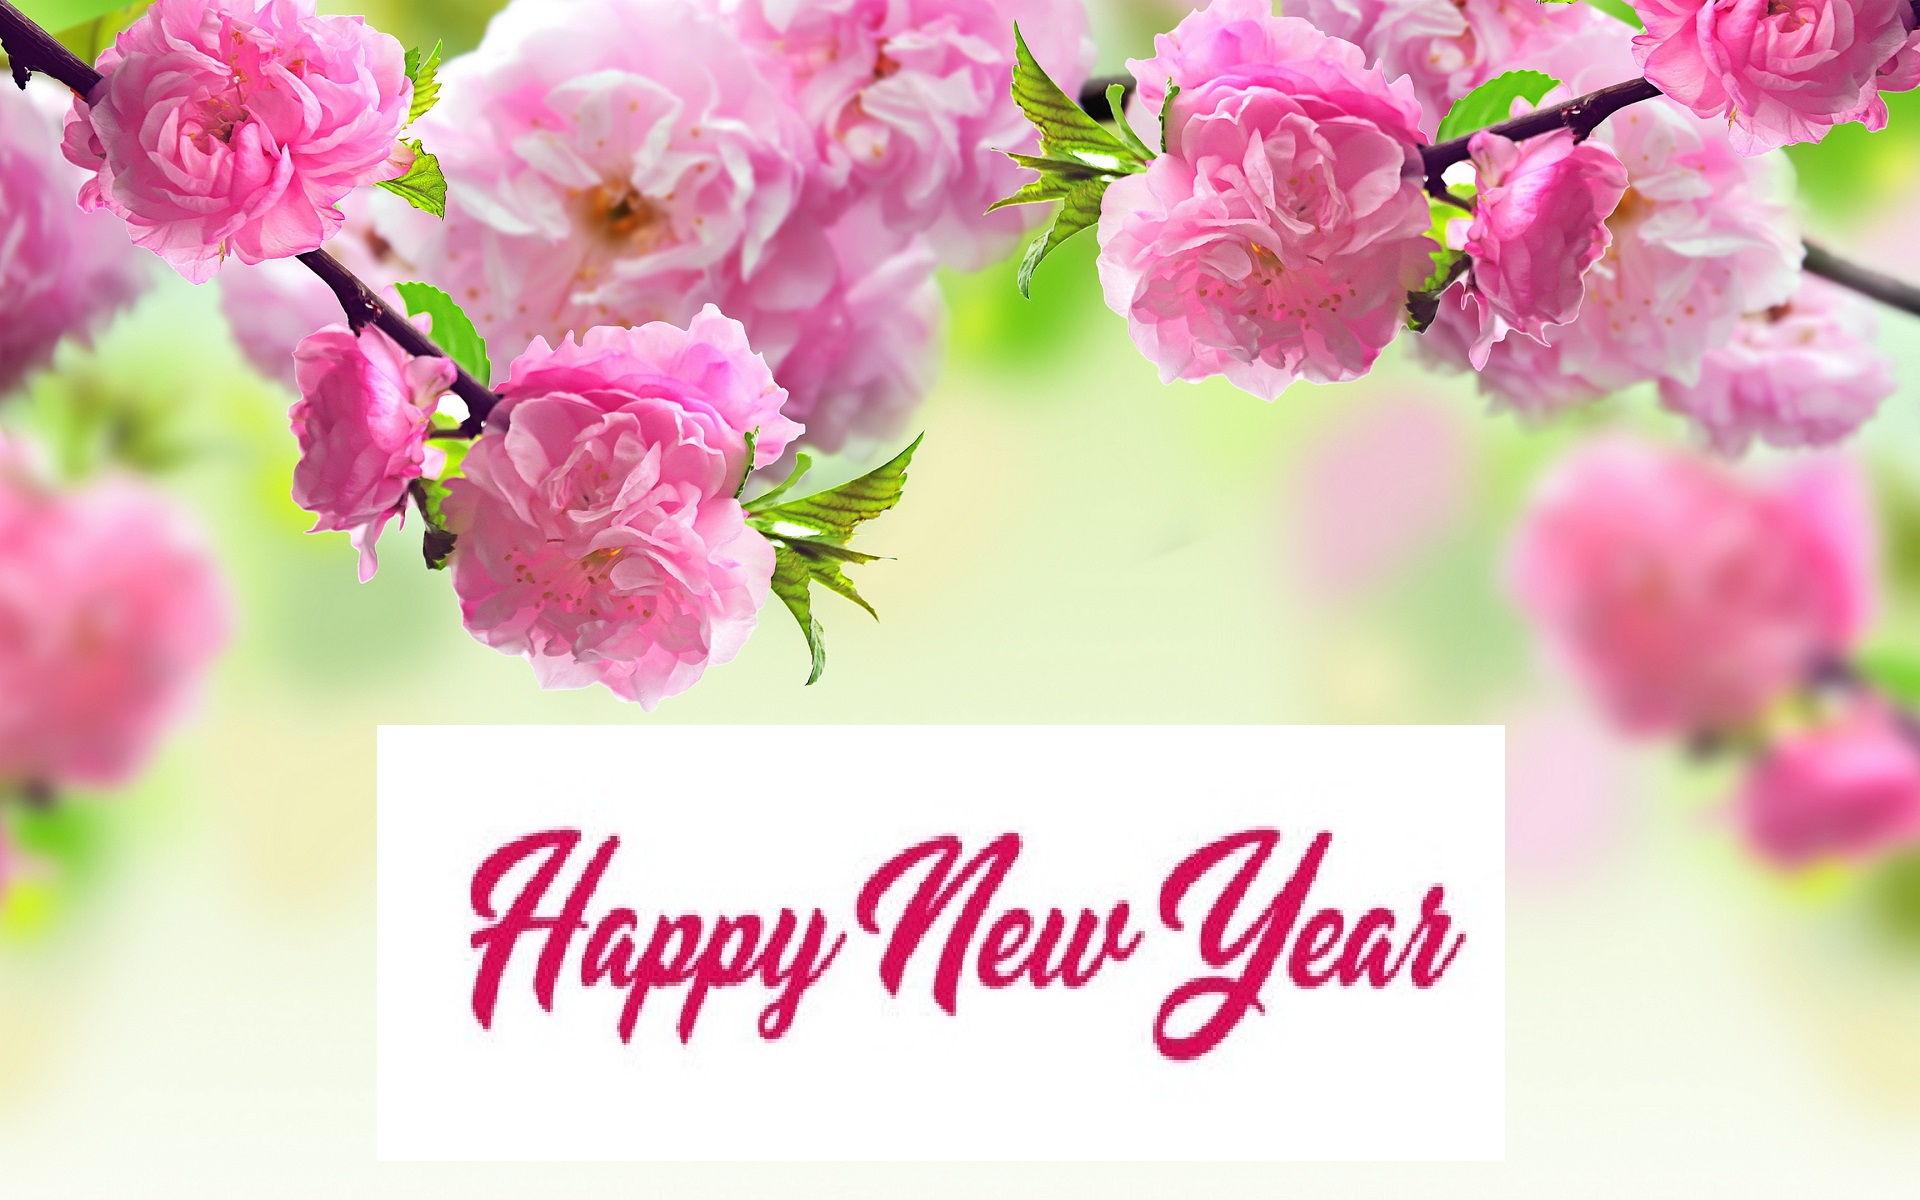 Happy New Year 2018 Images U0026 HD Wallpapers